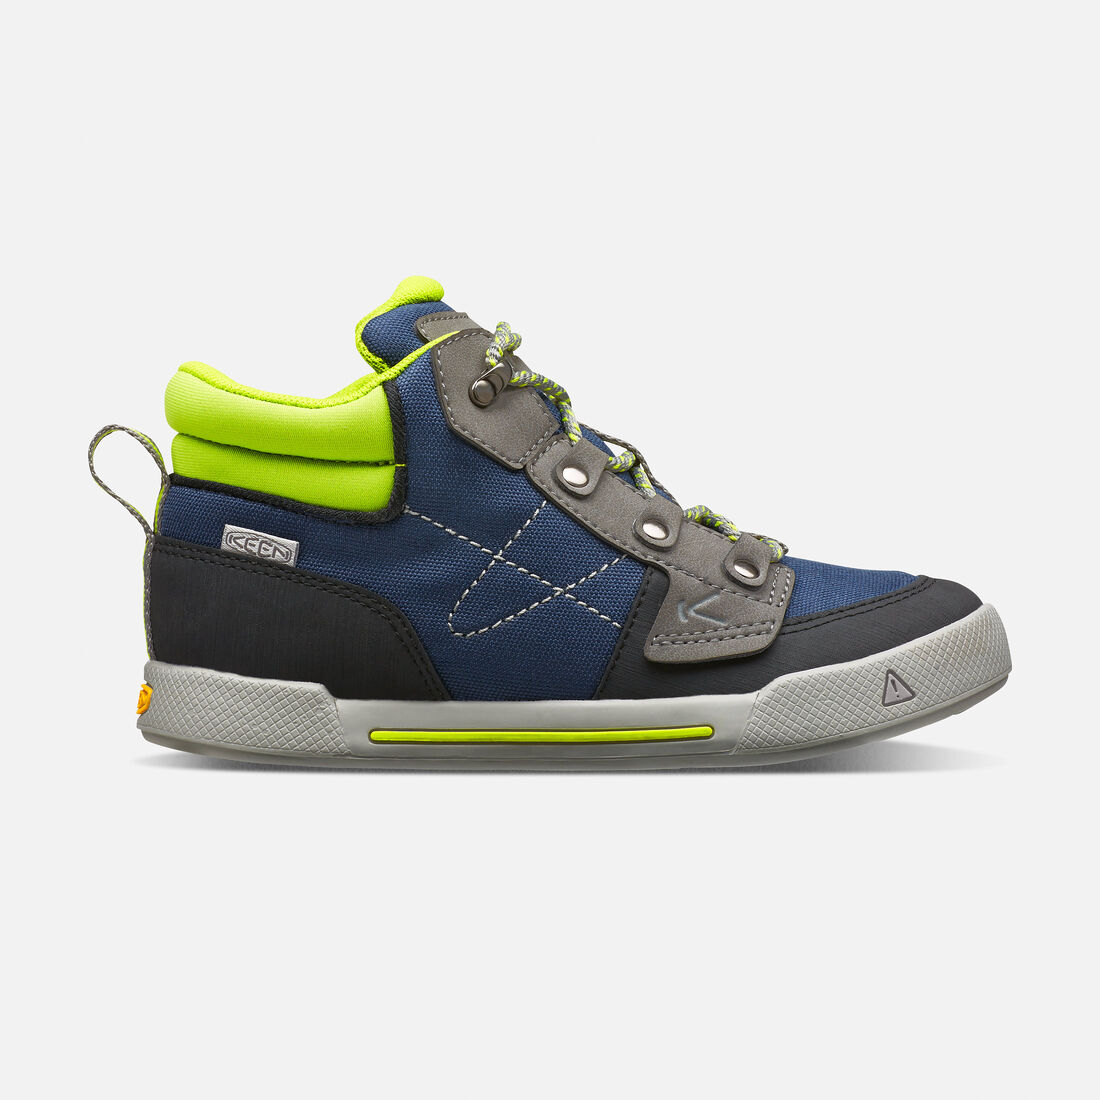 Big Kids' Encanto Wesley High Top in Dress Blues/Macaw - large view.